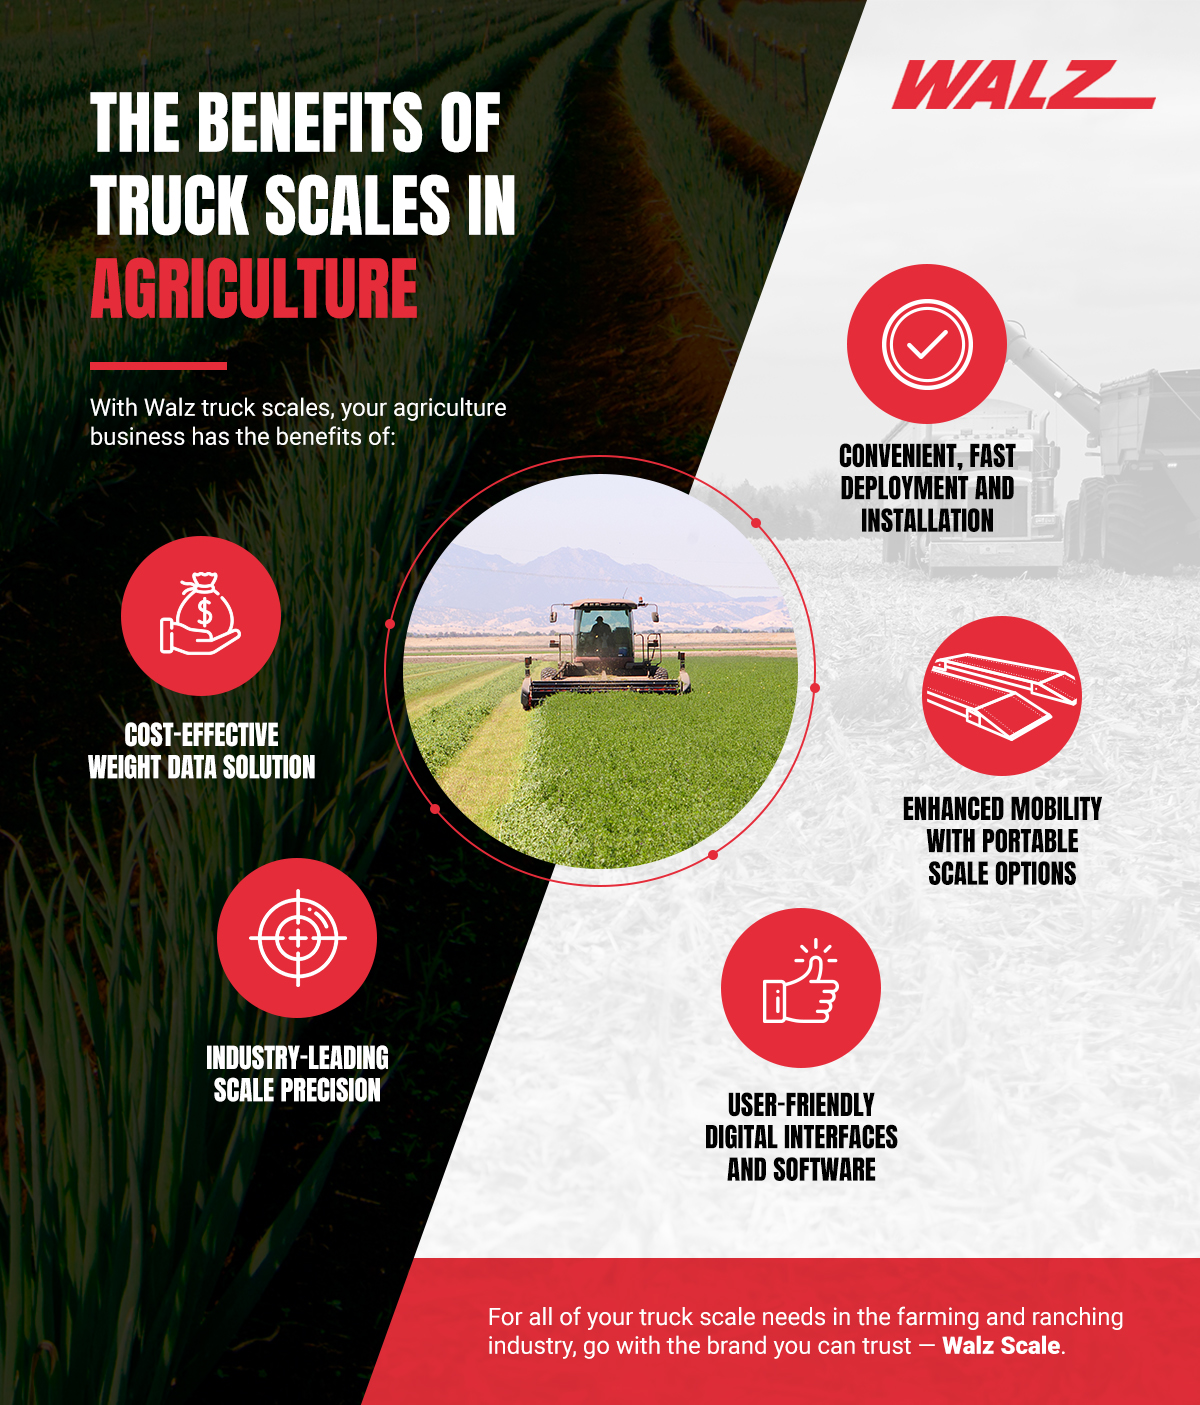 The Benefits of Truck Scales in Agriculture